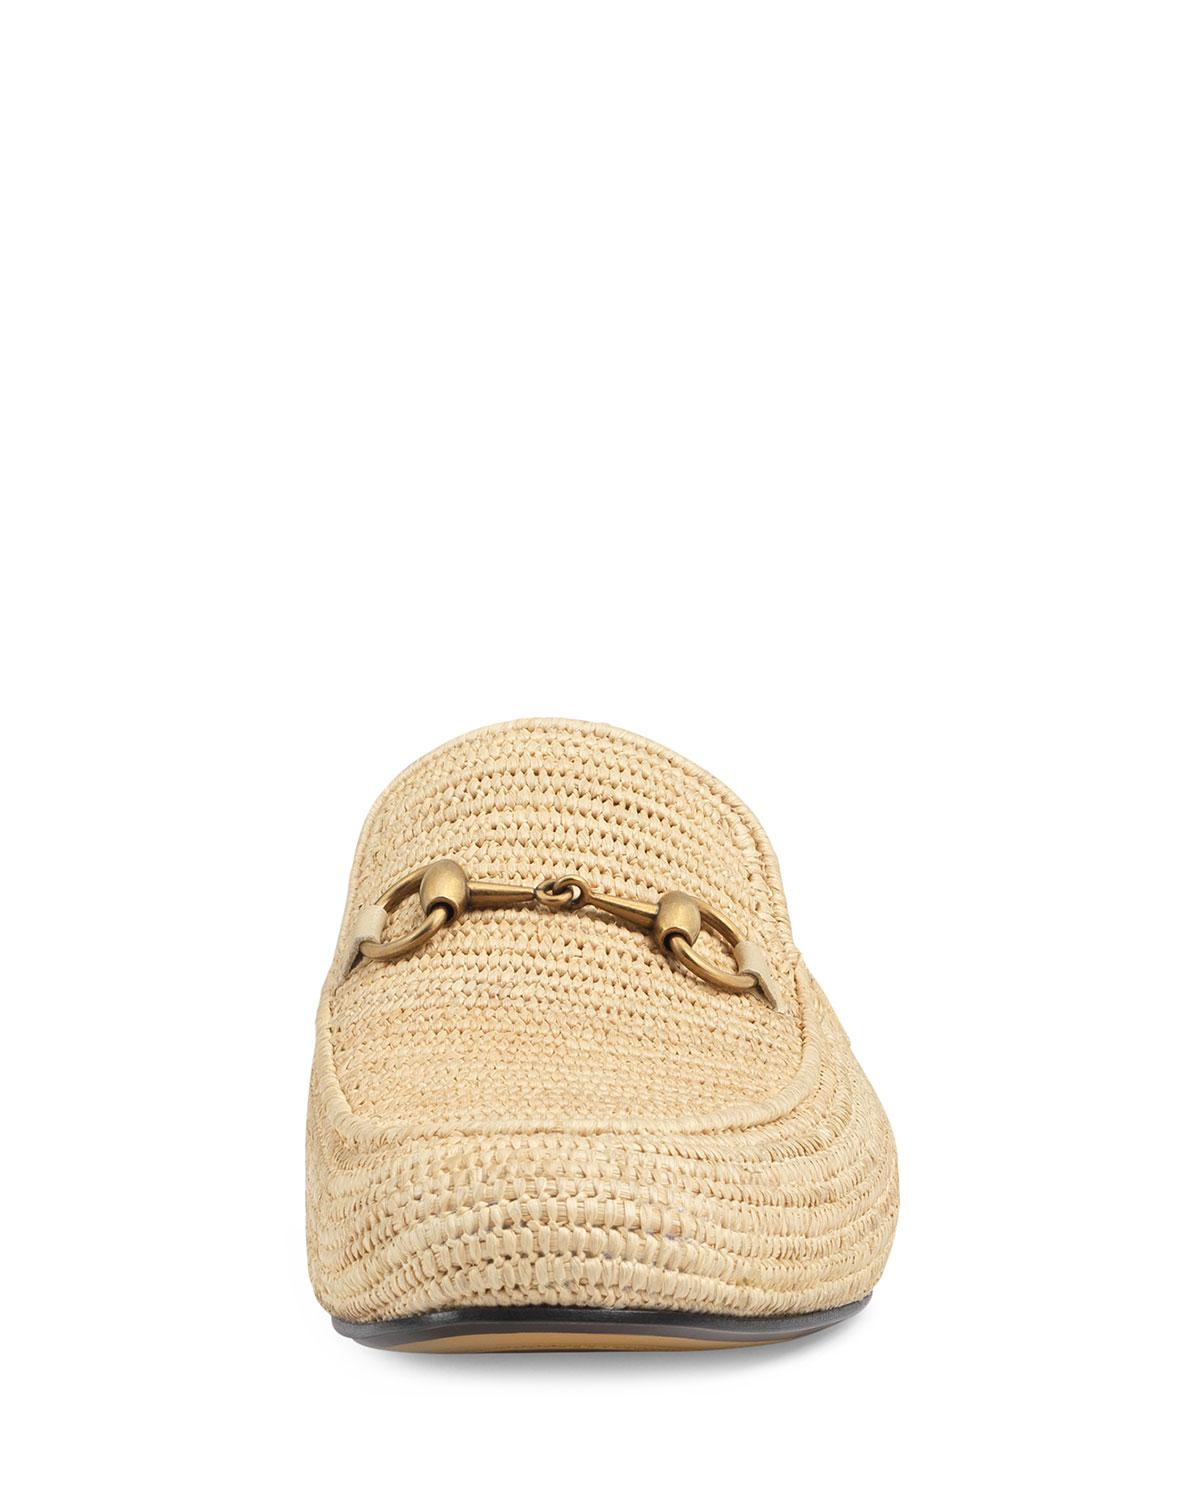 a2f06ec316f Lyst - Gucci Straw Princetown Slipper in Natural for Men - Save 60%